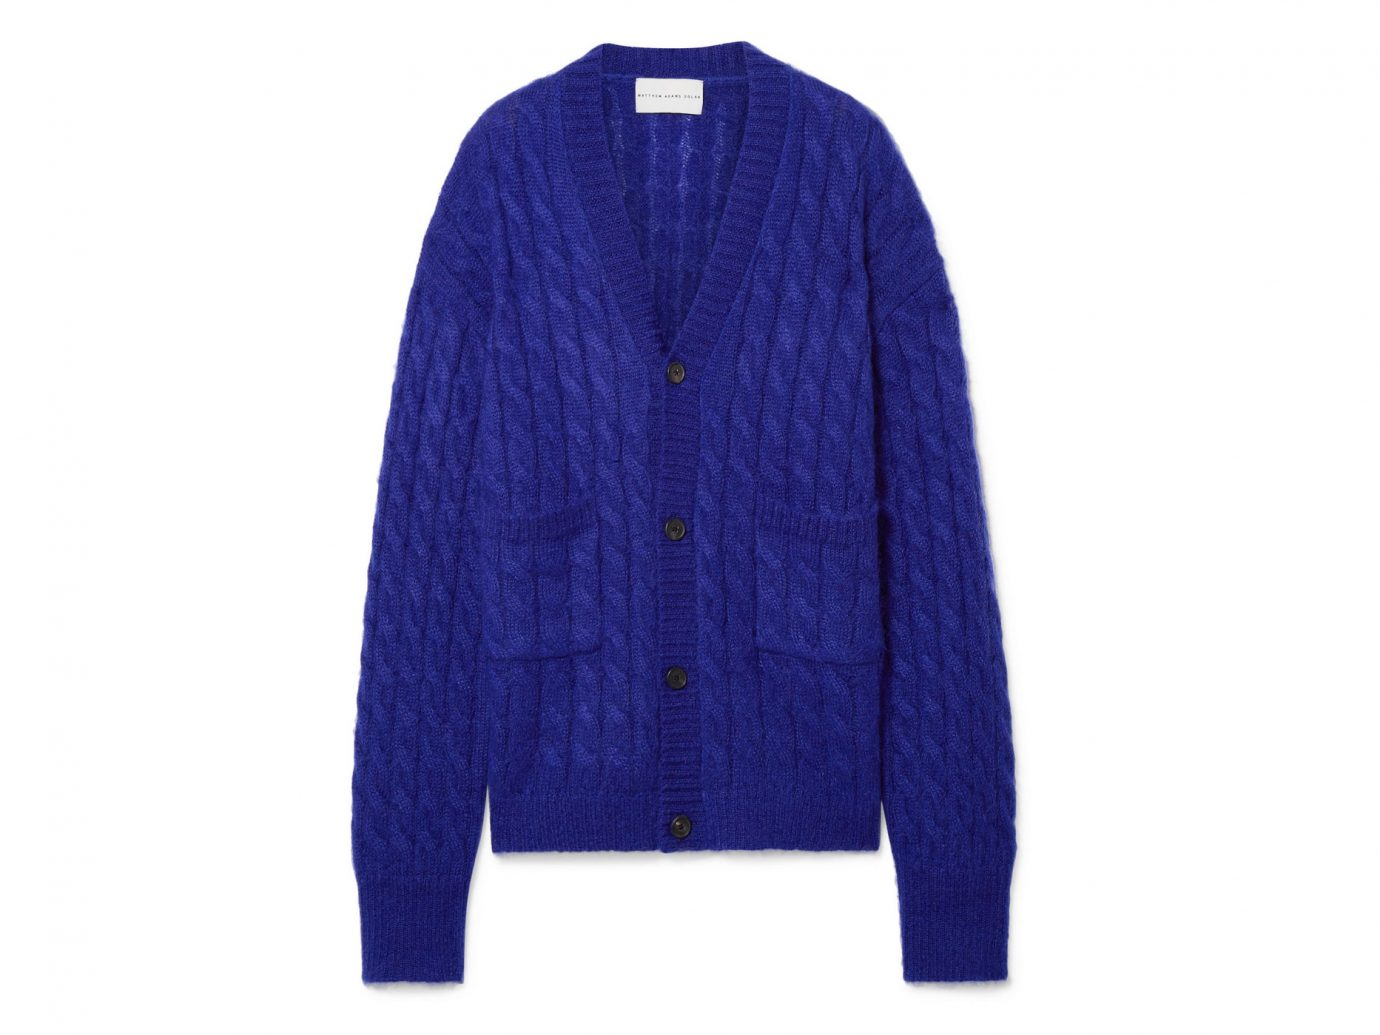 Matthew Adams Dolan Oversized Cable-Knit Cardigan